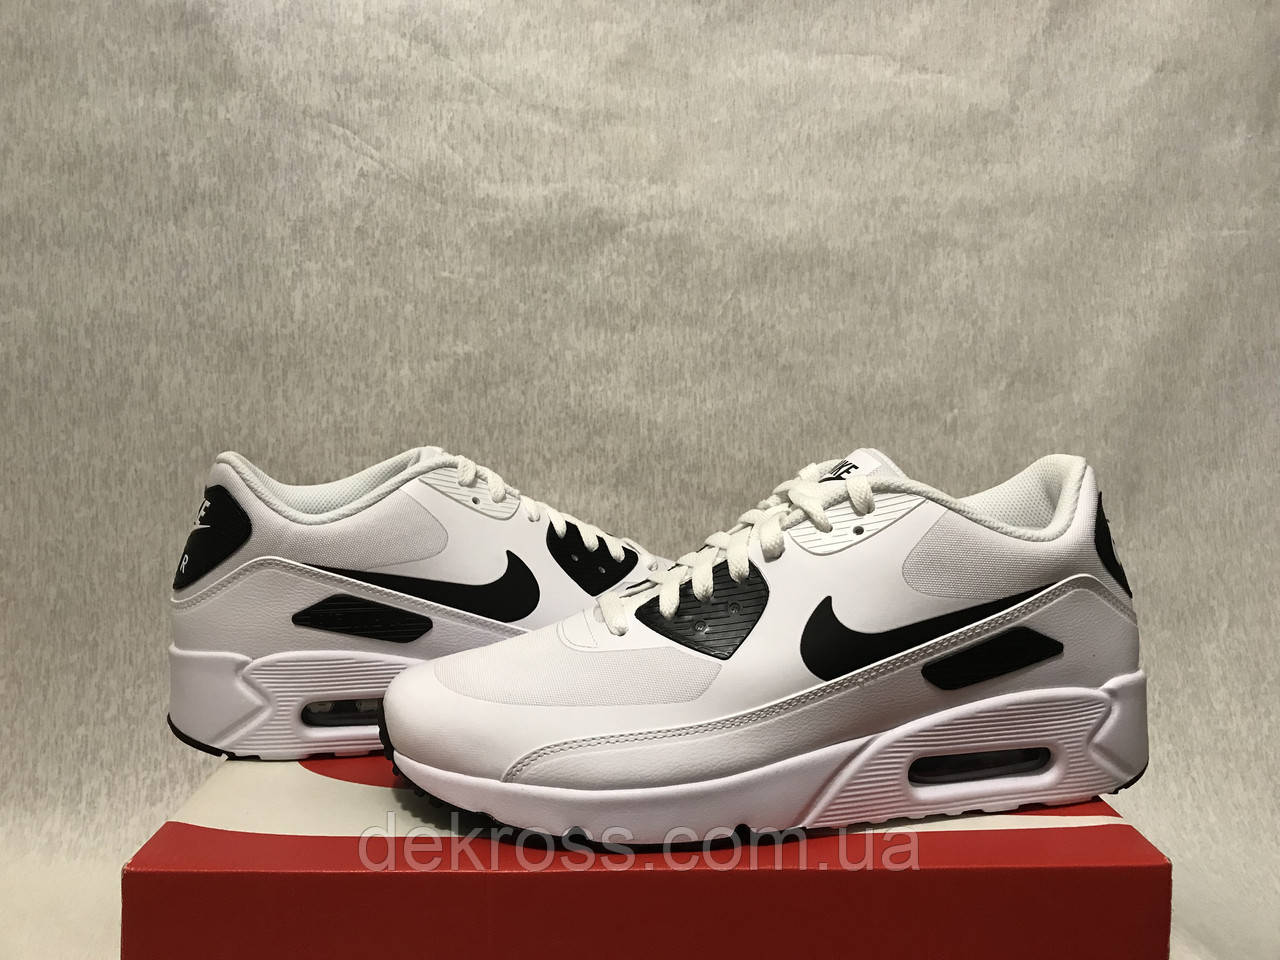 Кроссовки Nike Air Max 90 Ultra 2.0 Essential (44.5) Оригинал 875695-104